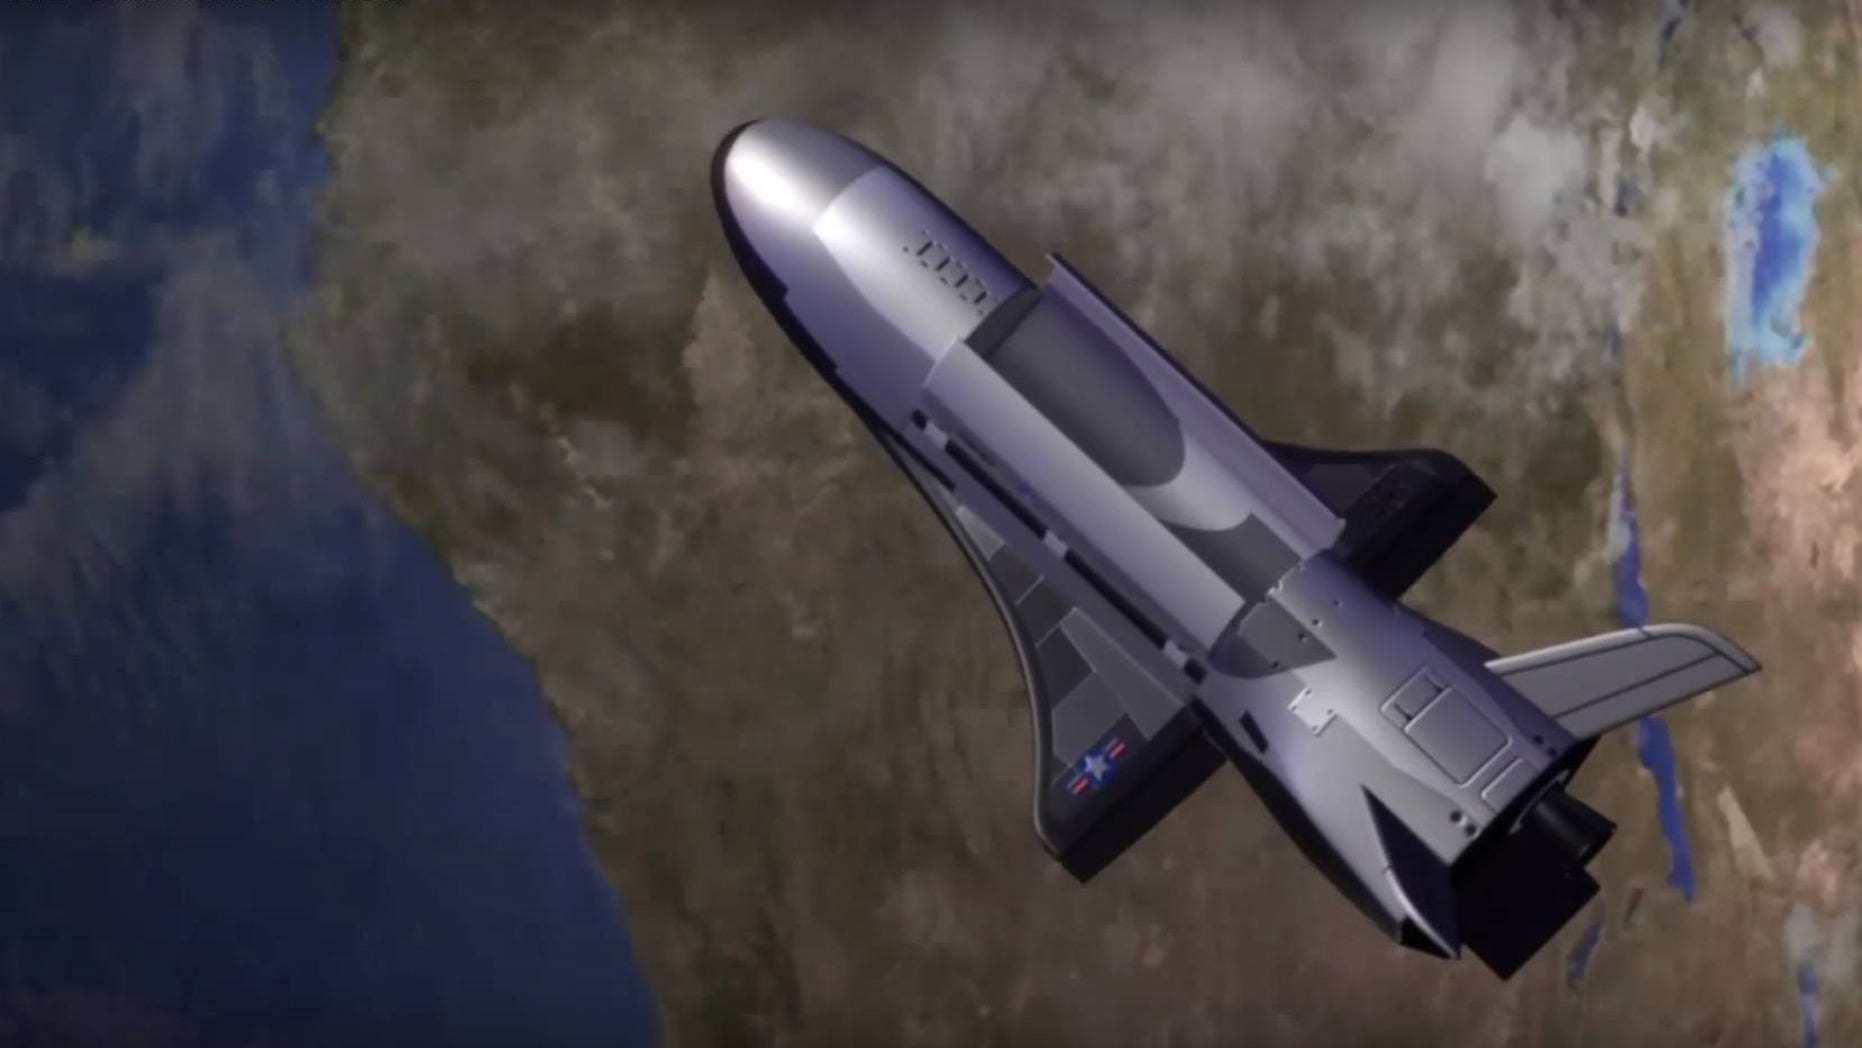 Artist's illustration of the U.S. Air Force's X-37B space plane in Earth orbit. One of the vehicles just soared past 200 days in its latest mission, in which it is carrying out classified duties.